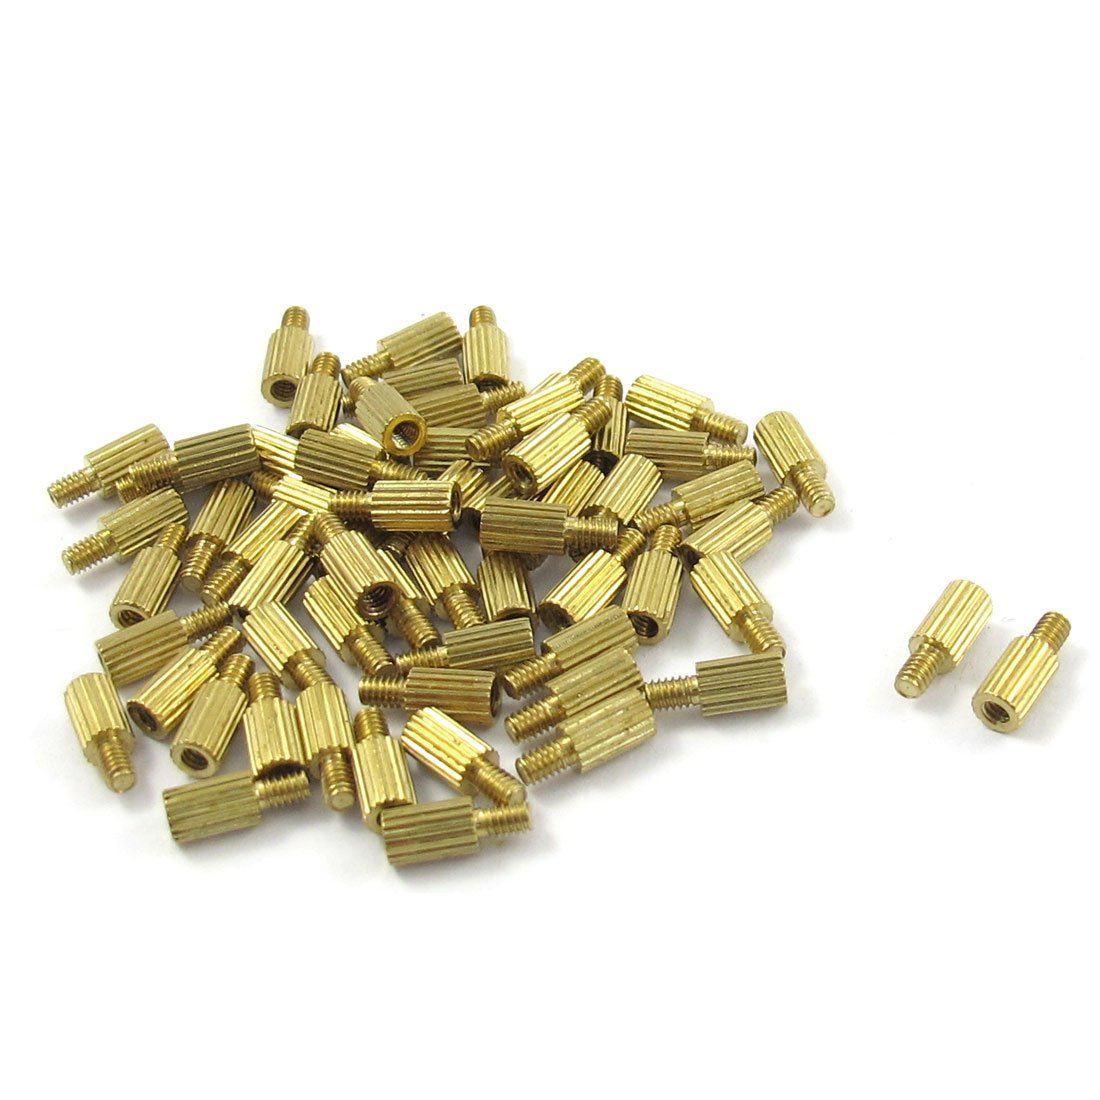 CLOS 50 Pcs Male to Female Thread Brass Pillars Standoff Spacer M2x5mmx8mm m4 male m 25 30 35 40 45 50 55 60 mm x m4 6mm female brass standoff spacer copper hexagonal stud spacer hollow pillars